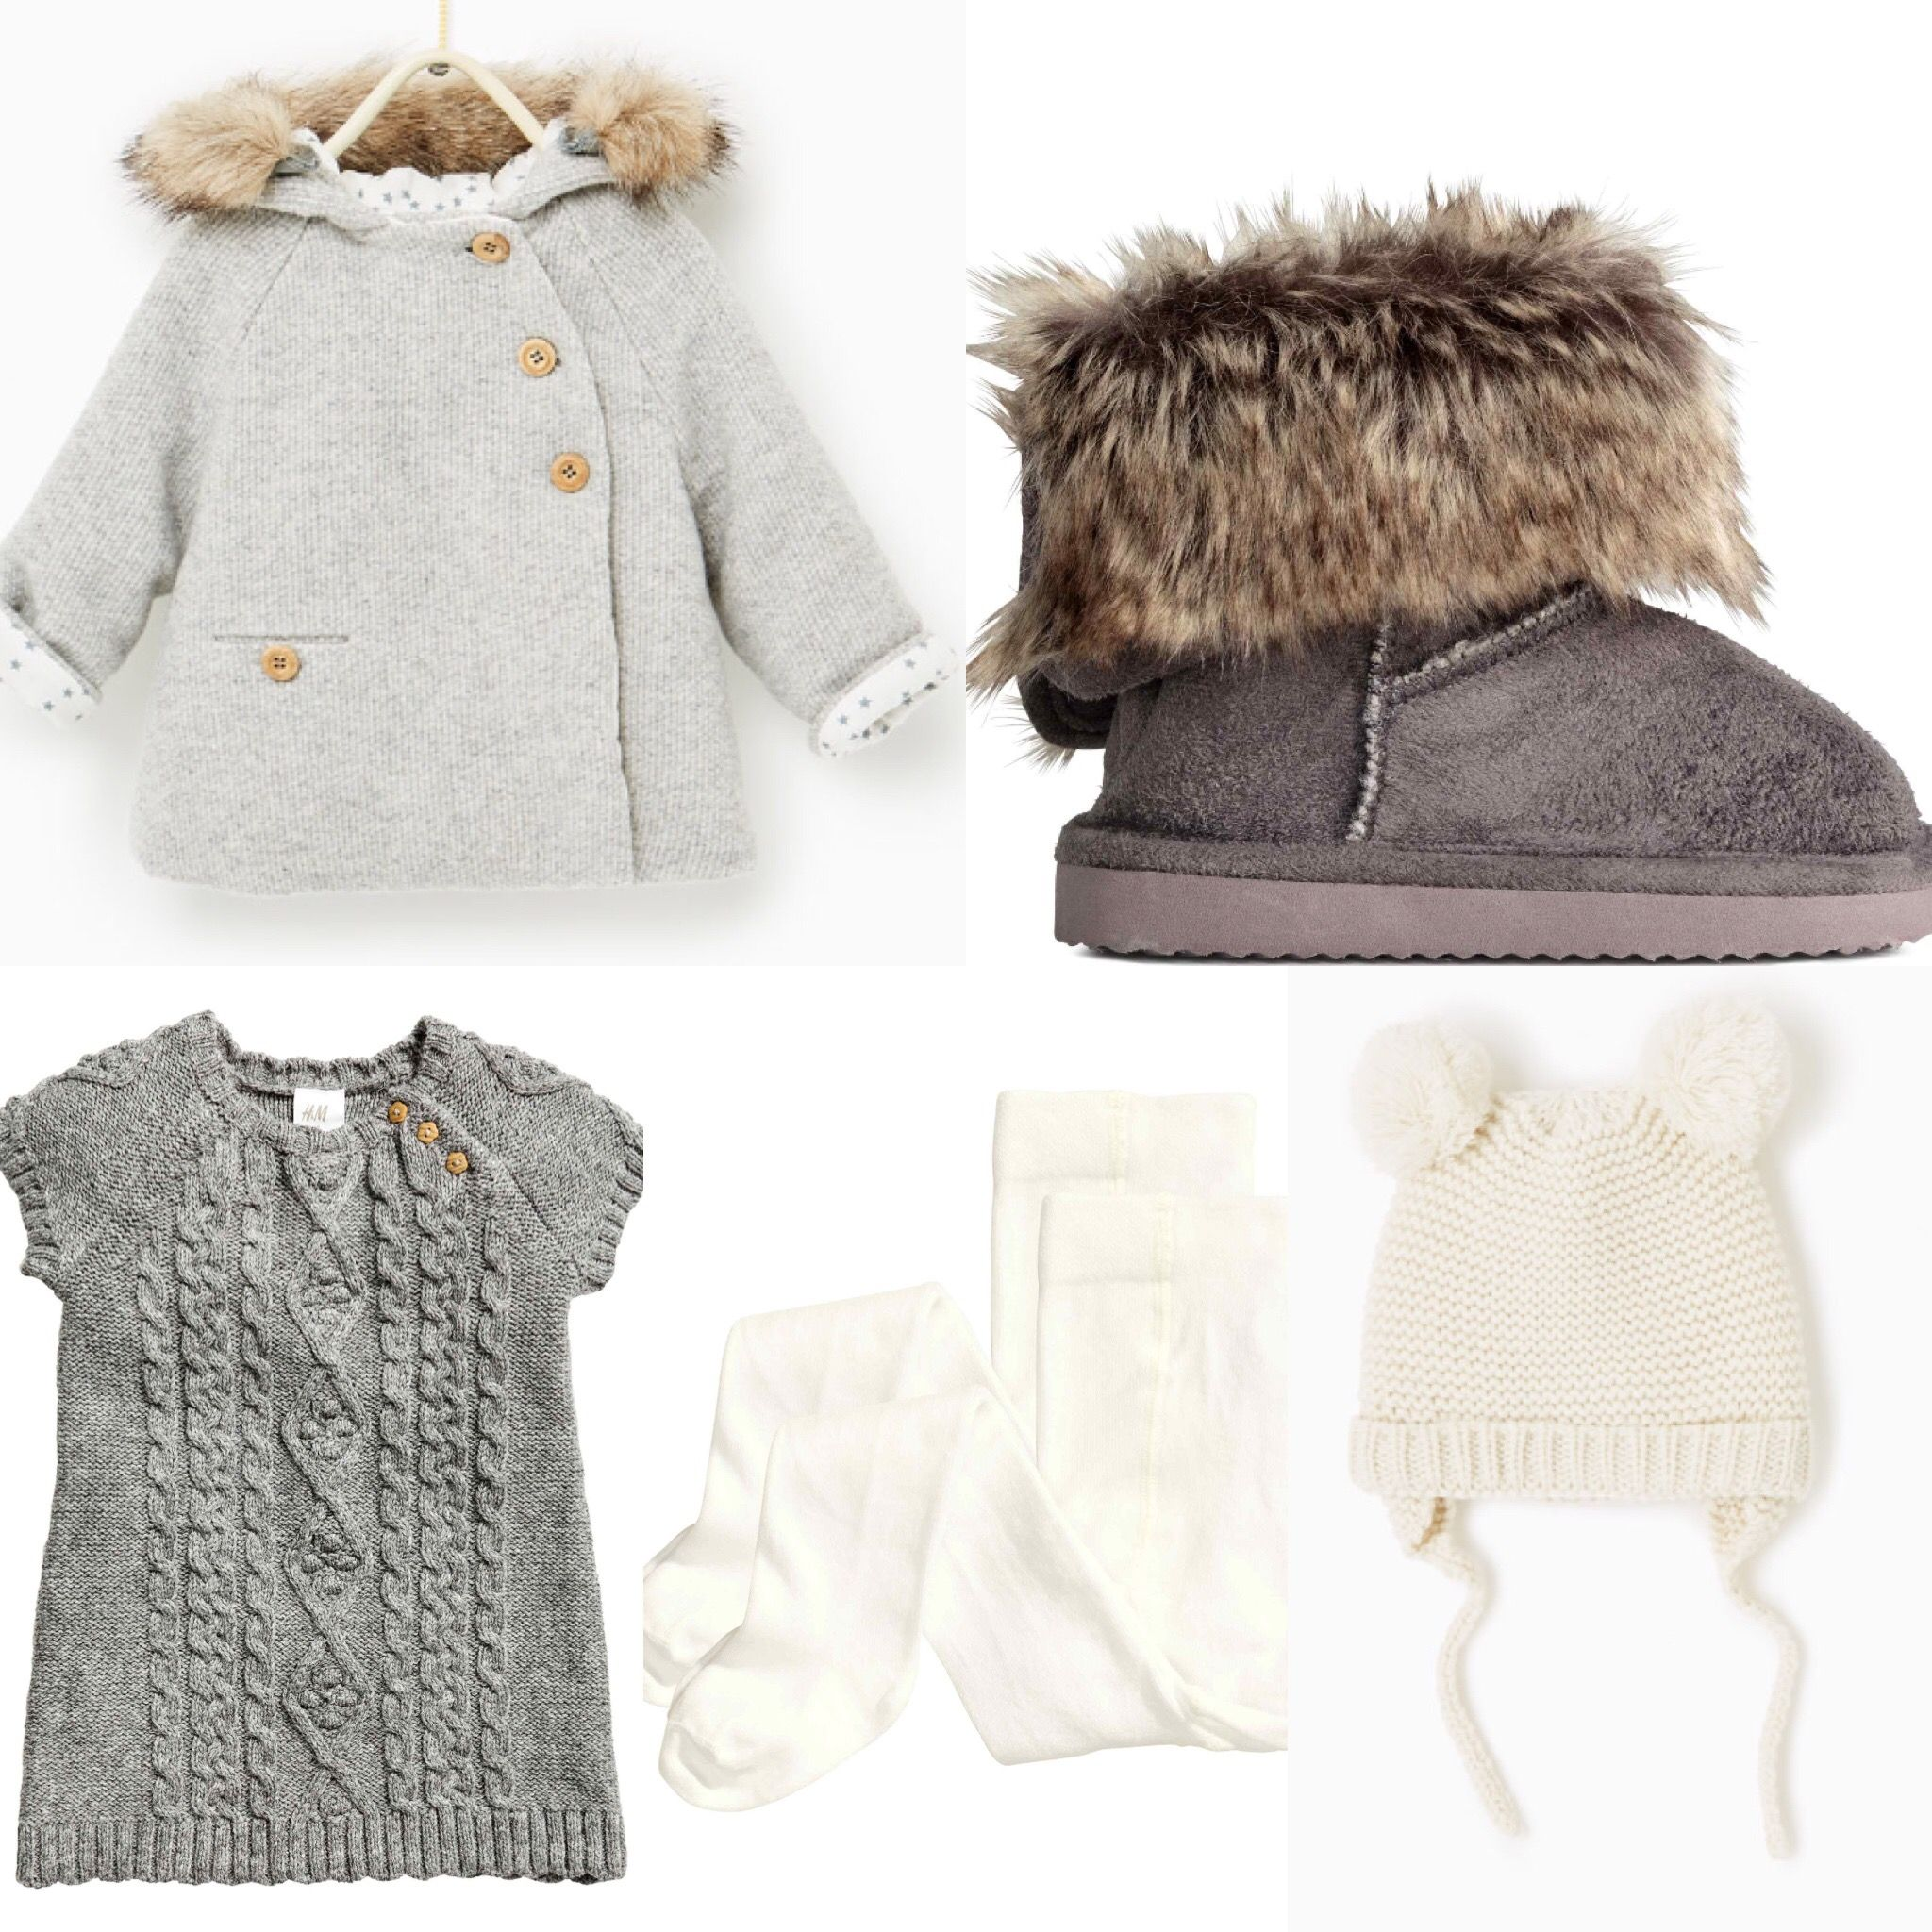 H&M, Zara 2016 fall baby girl outfit idea. H&M Grey knitted dress ...